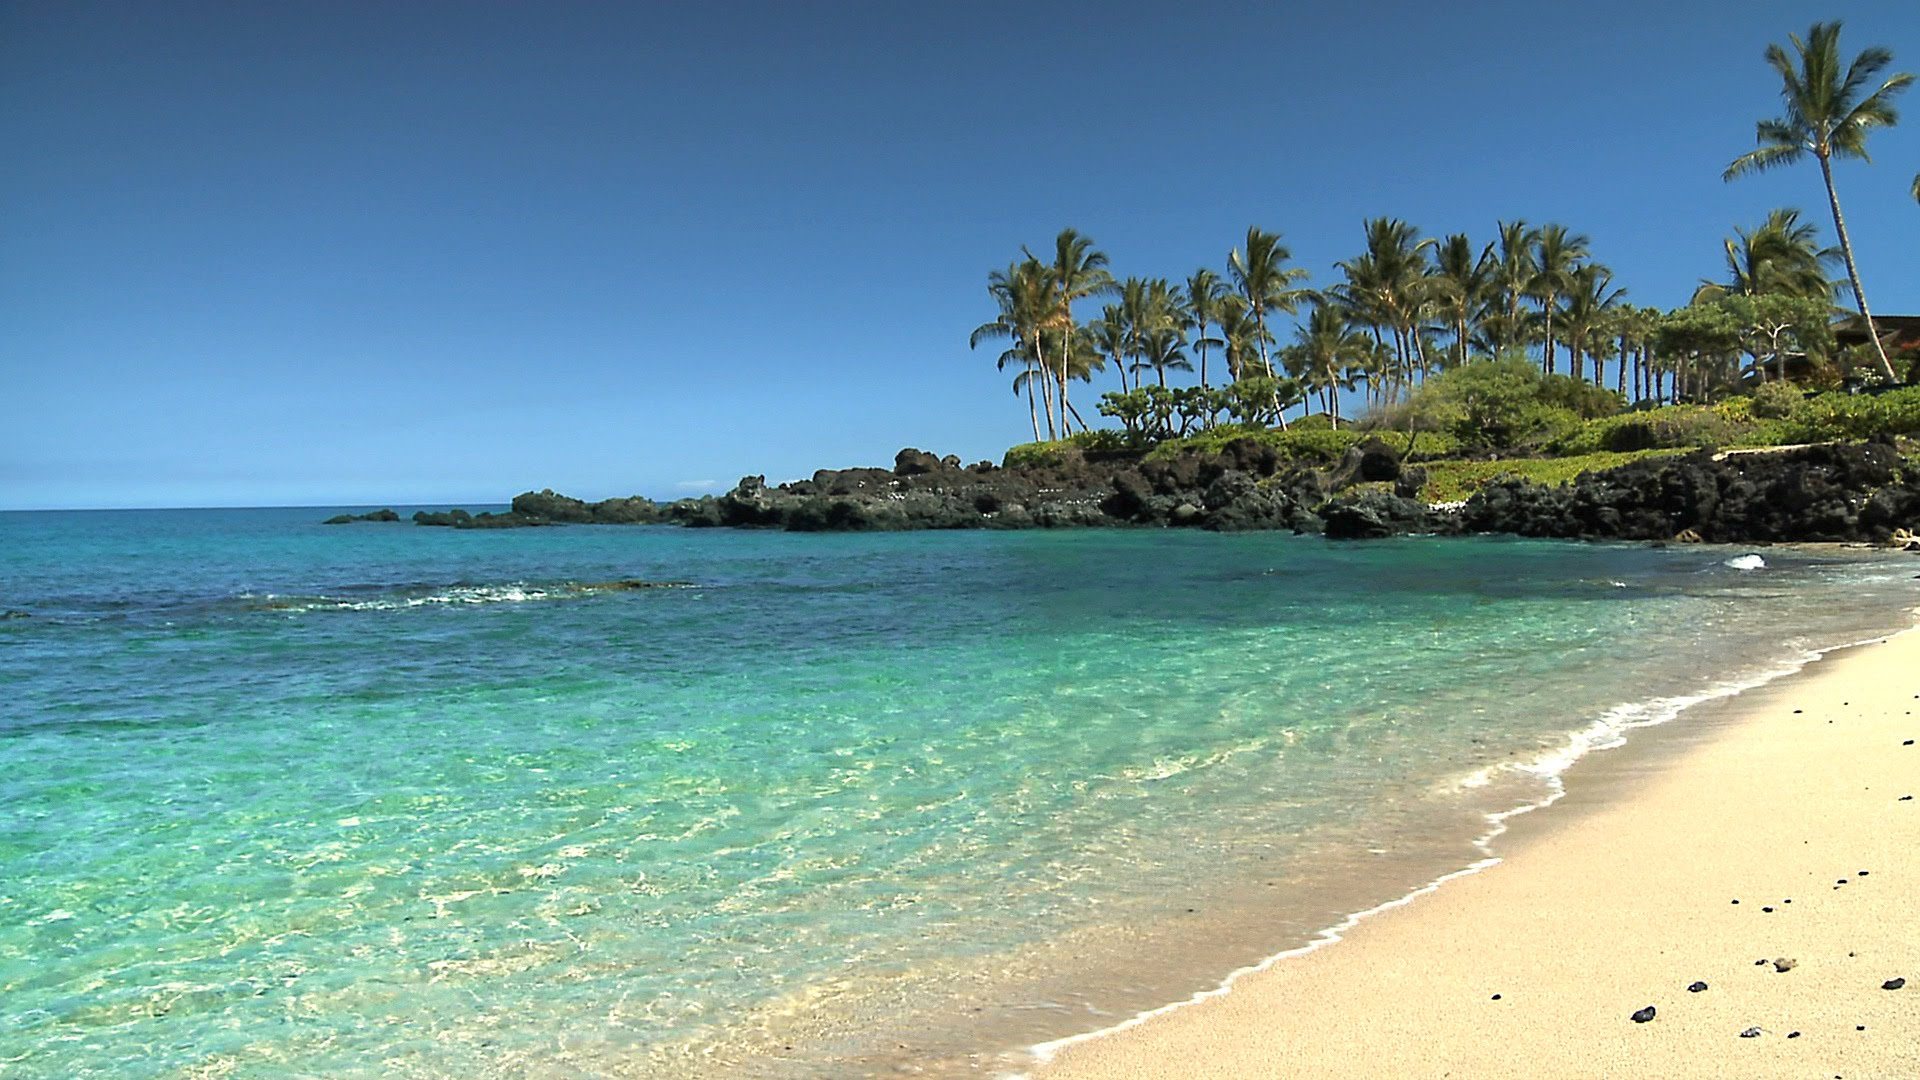 Hawaii beach photo